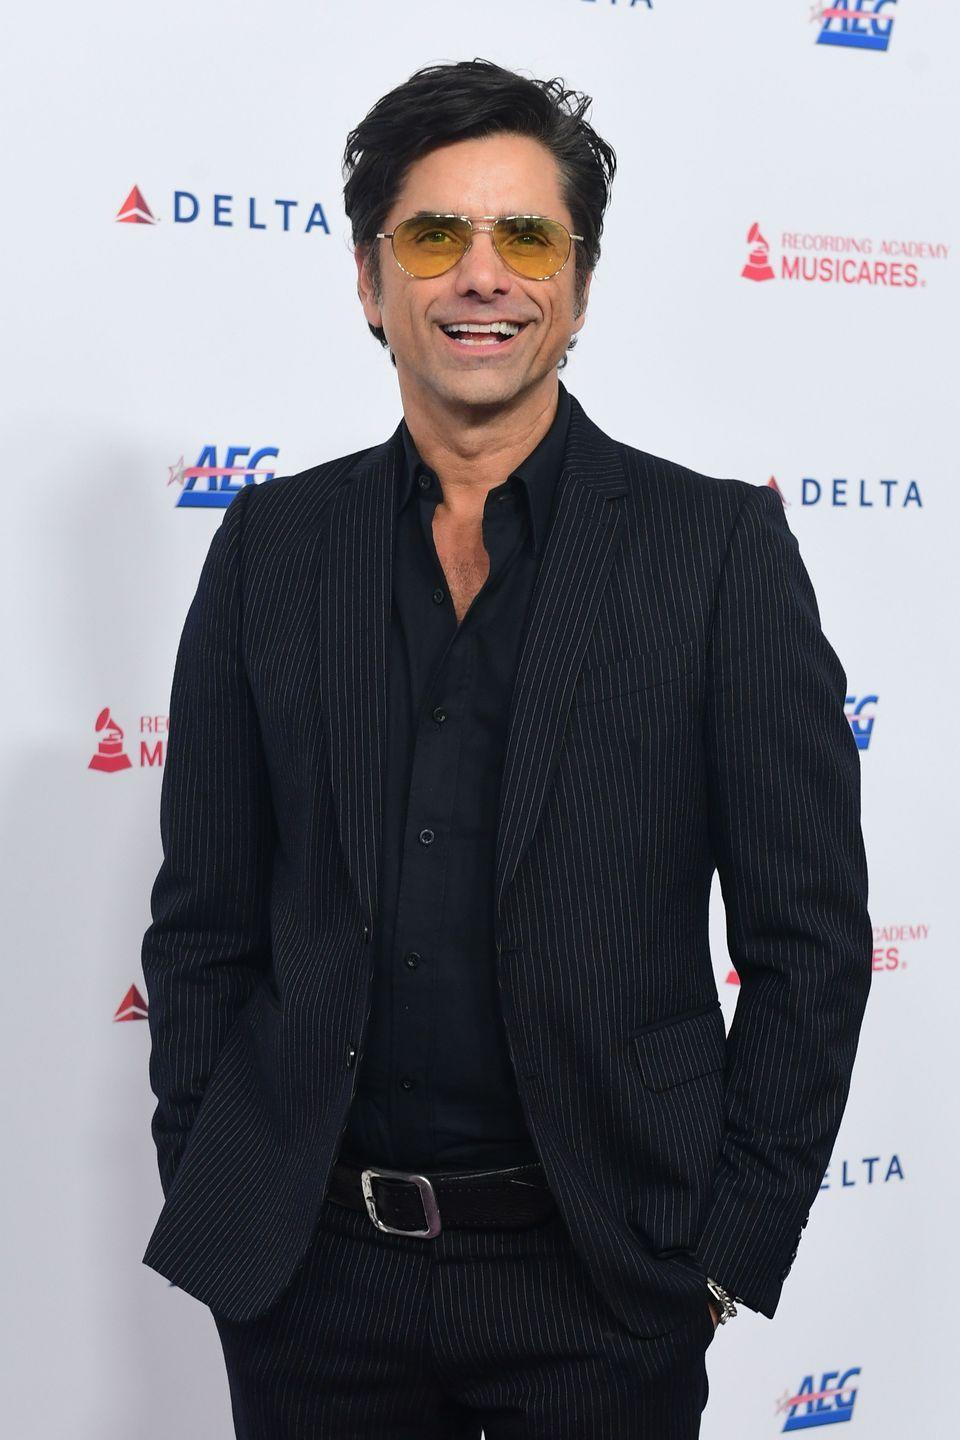 "<p><strong>Birthday: </strong>August 19</p><p><strong>Age Turning: </strong>57</p><p>Stamos, who turns 57 this year—will always look like Elvis to us—even <a href=""https://www.oprahmag.com/entertainment/a30105484/john-stamoss-son-thinks-dad-is-elvis/"" rel=""nofollow noopener"" target=""_blank"" data-ylk=""slk:his two-year-old son agrees."" class=""link rapid-noclick-resp"">his two-year-old son agrees.</a><br></p>"